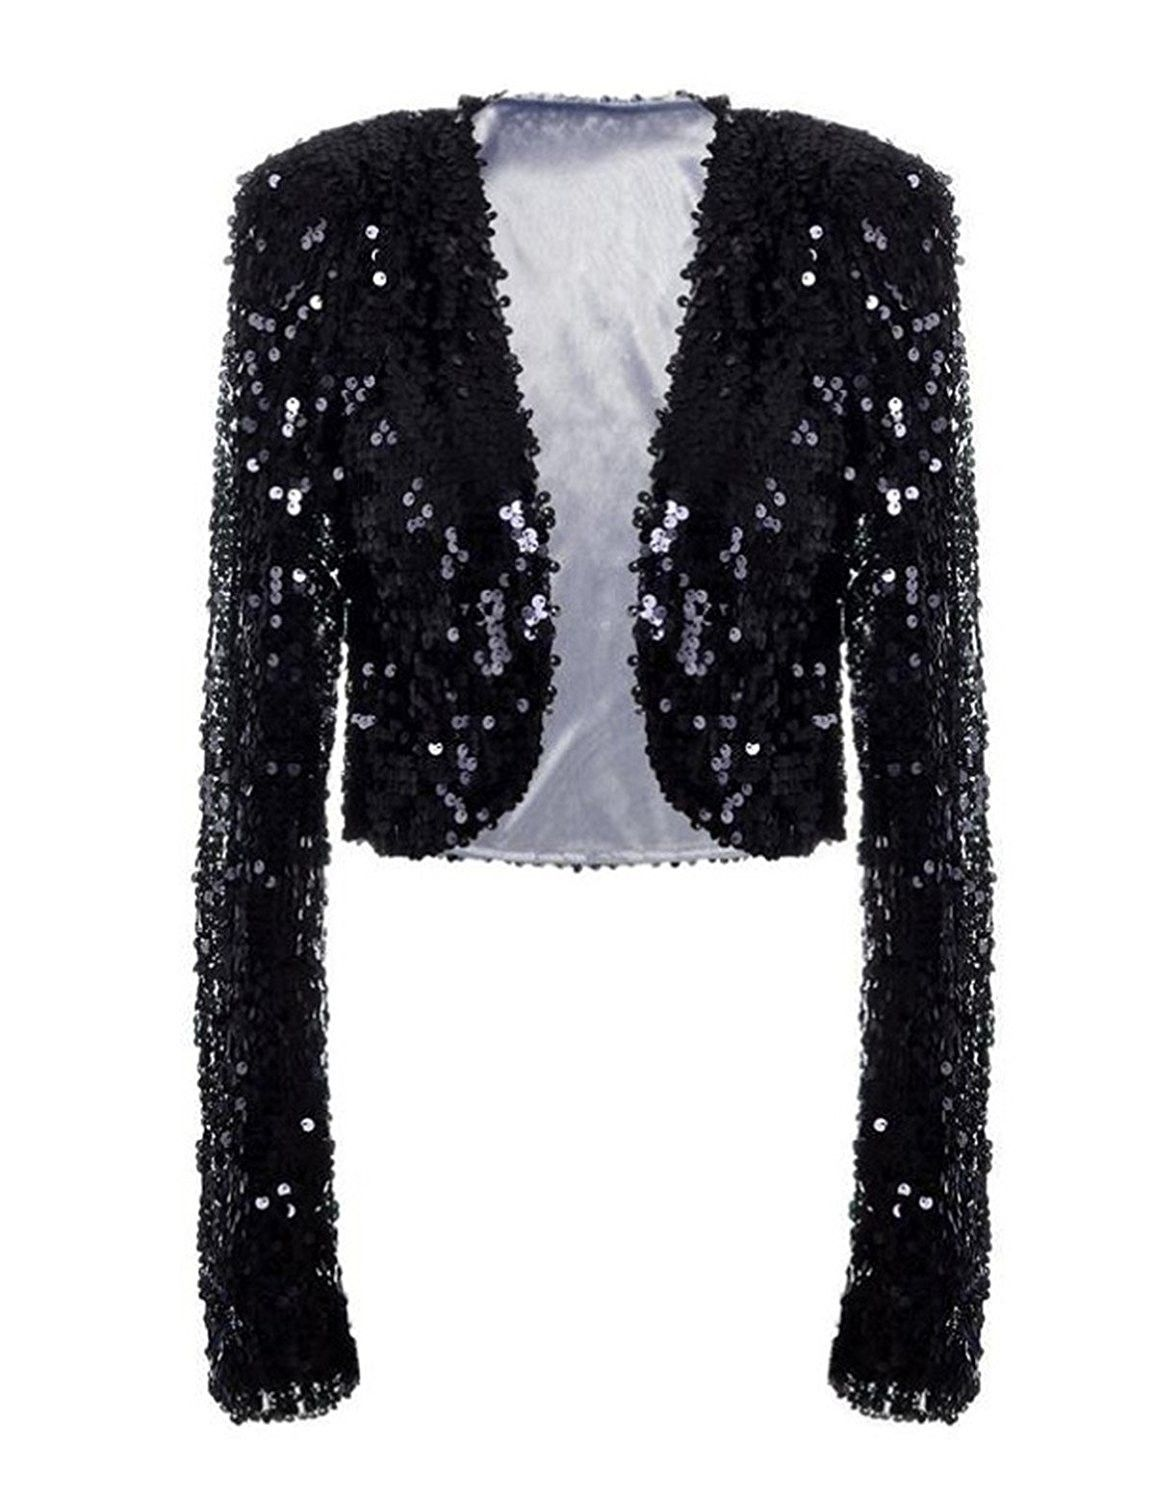 258a01827f Womens Sequin Jacket Long Sleeve Glitter Cropped Bolero Shrug ...